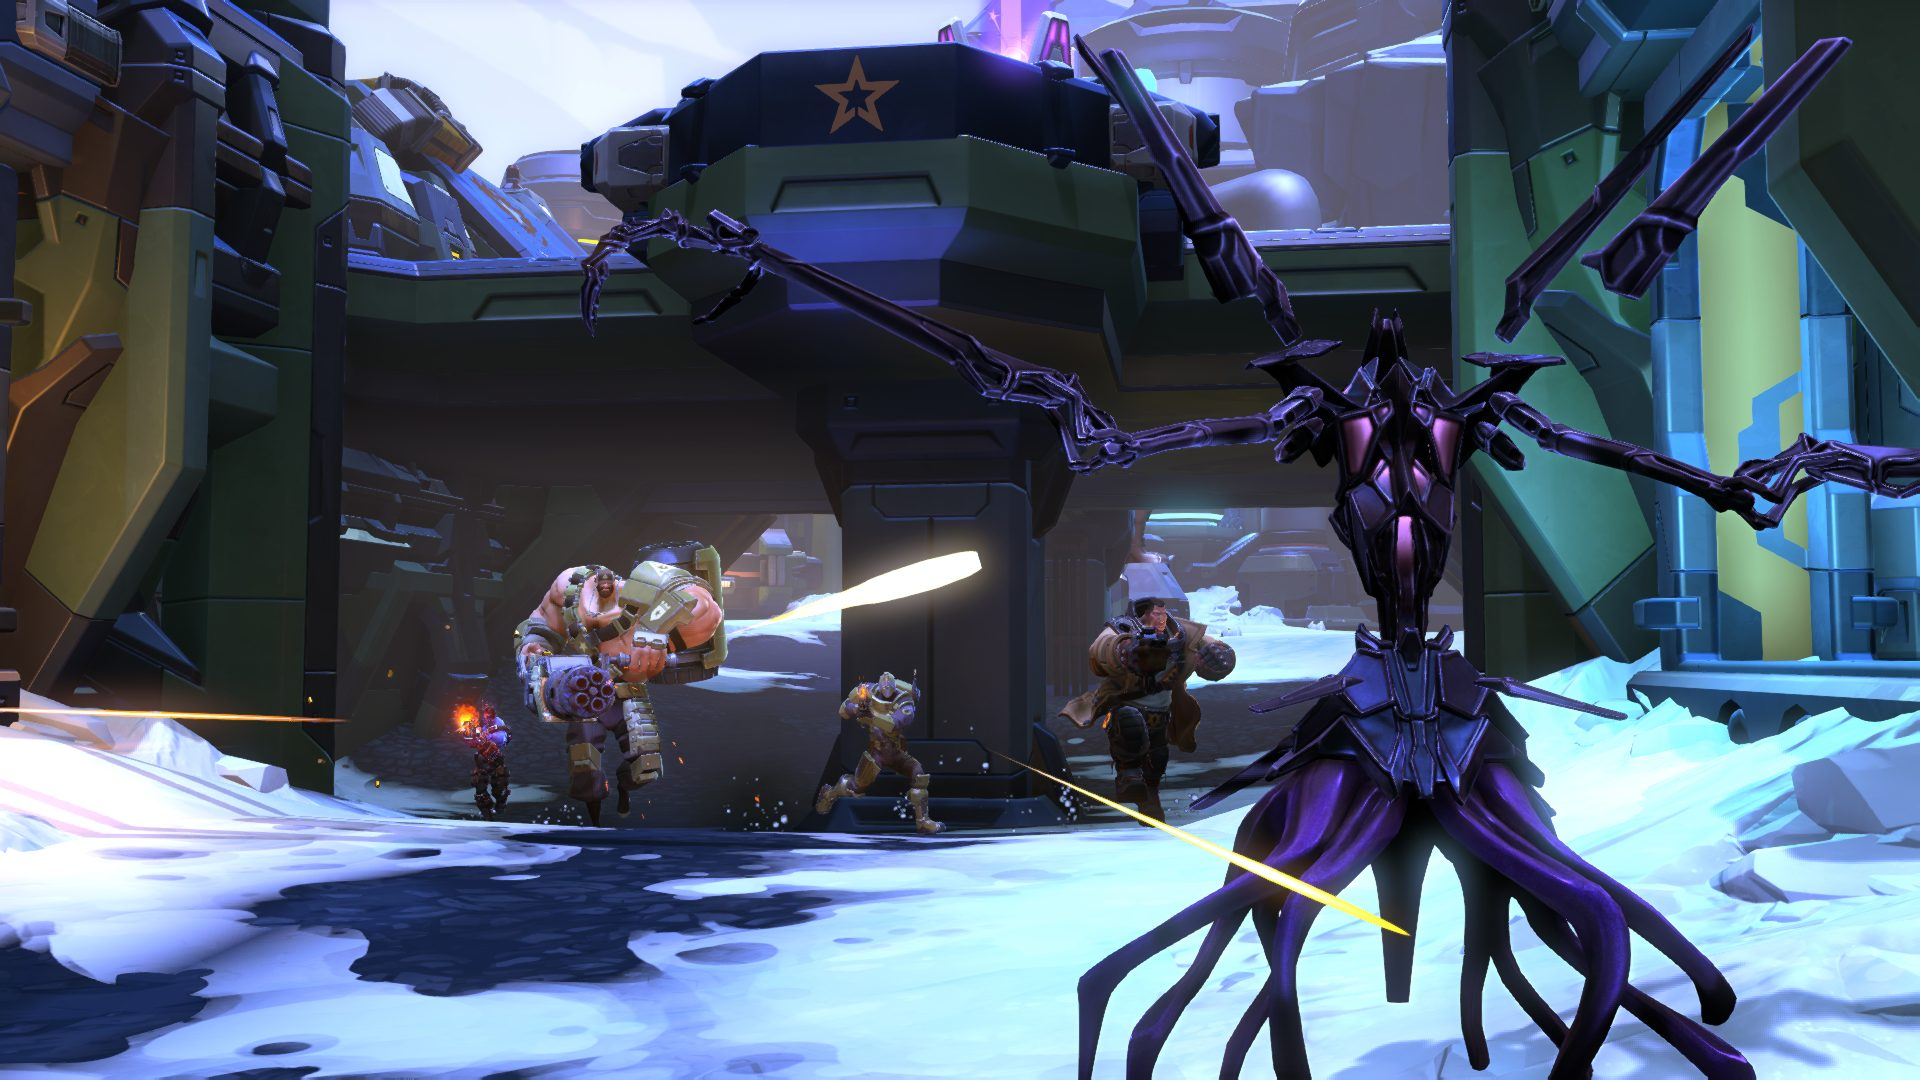 Скриншот  3 - Battleborn (ROW) steam key